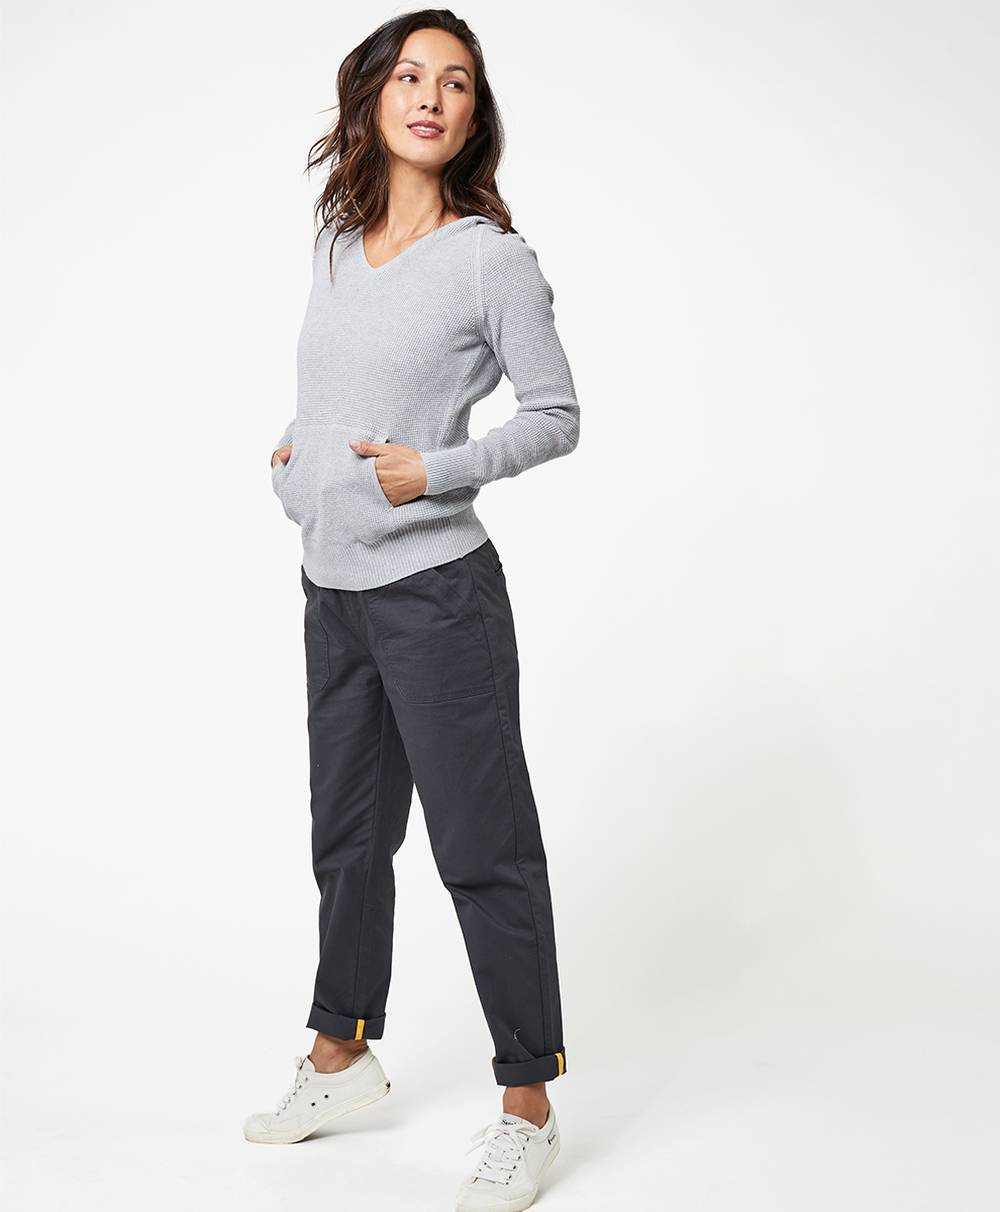 pact quality sustainable lasting pullovers